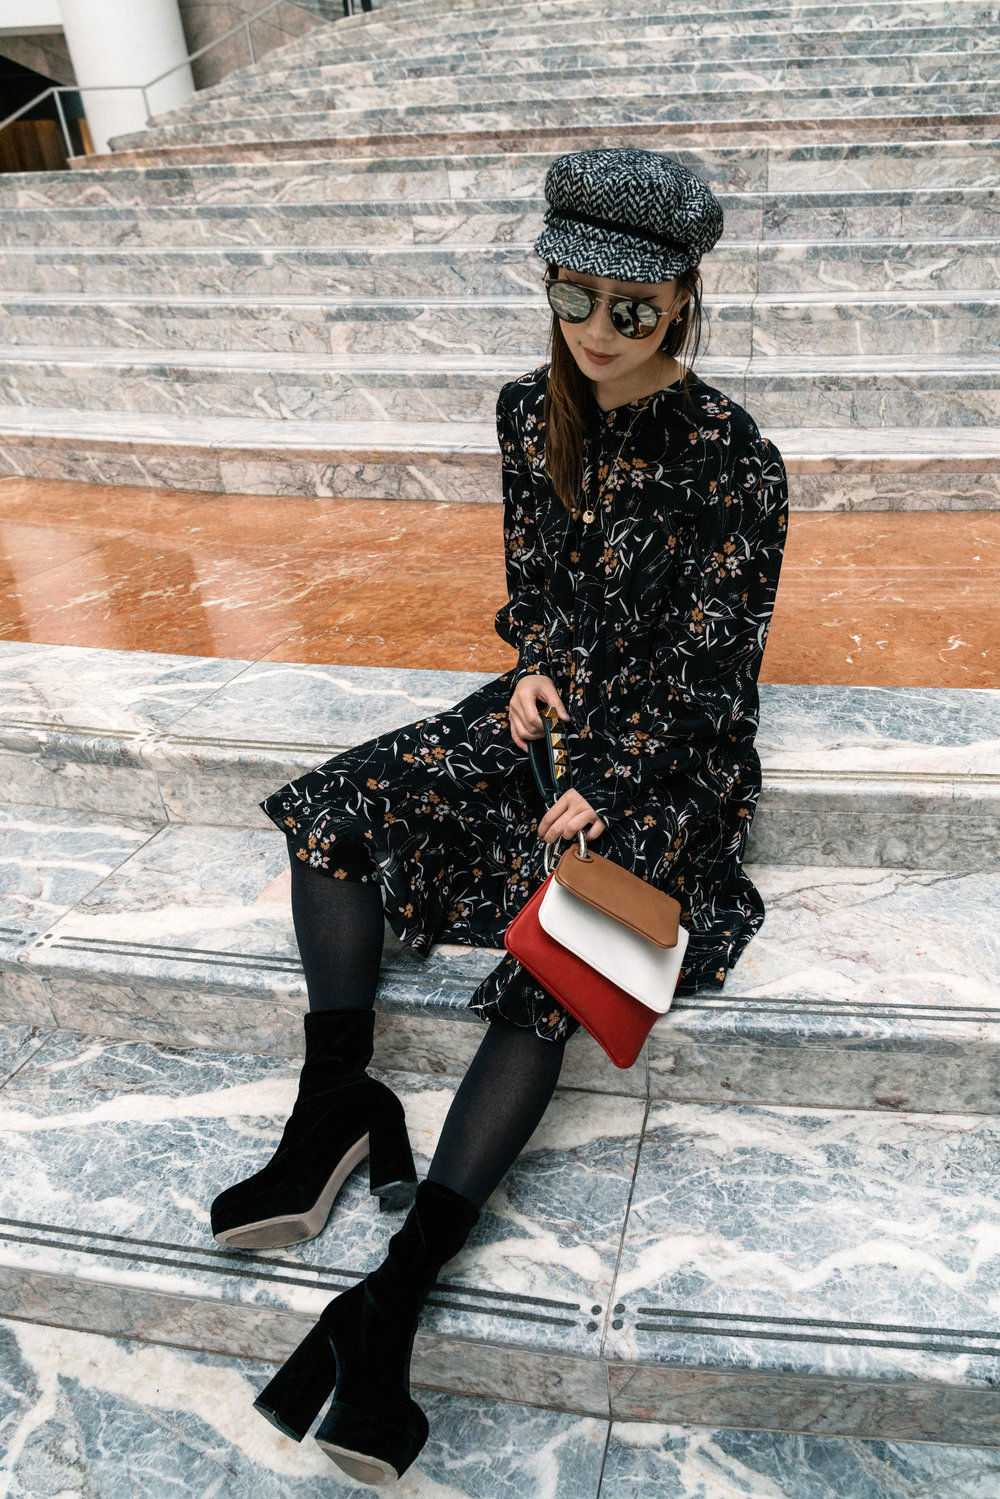 Isabel Marant Dress,  Fendi Pouch , Miu Miu Boots,  Eugenia Kim Hat ,  Oliver Peoples Sunglasses